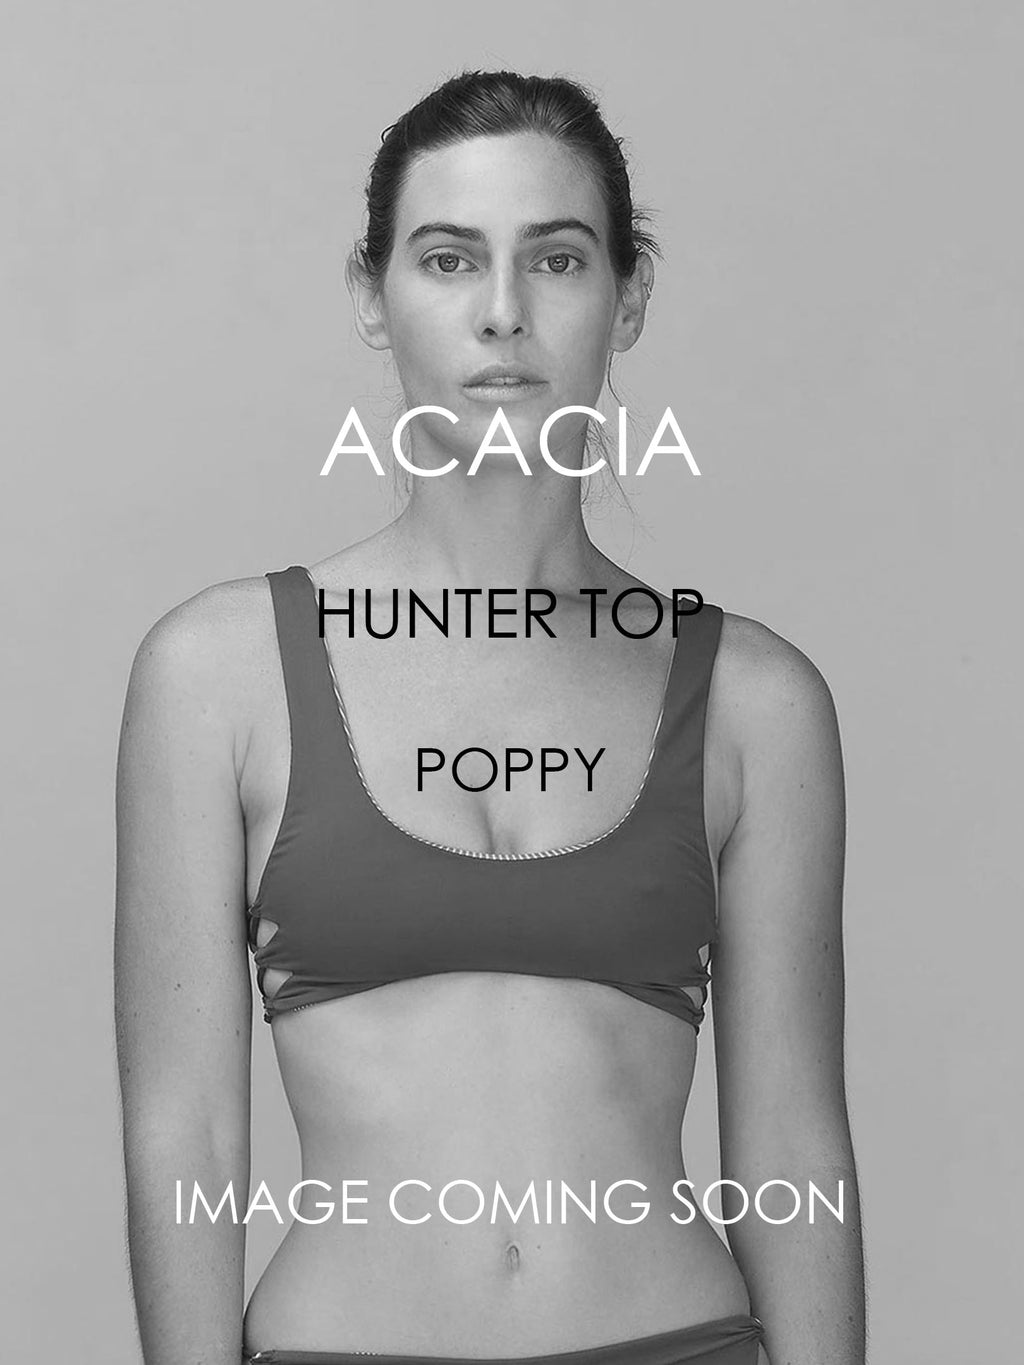 ACACIA Hunter Top | Poppy